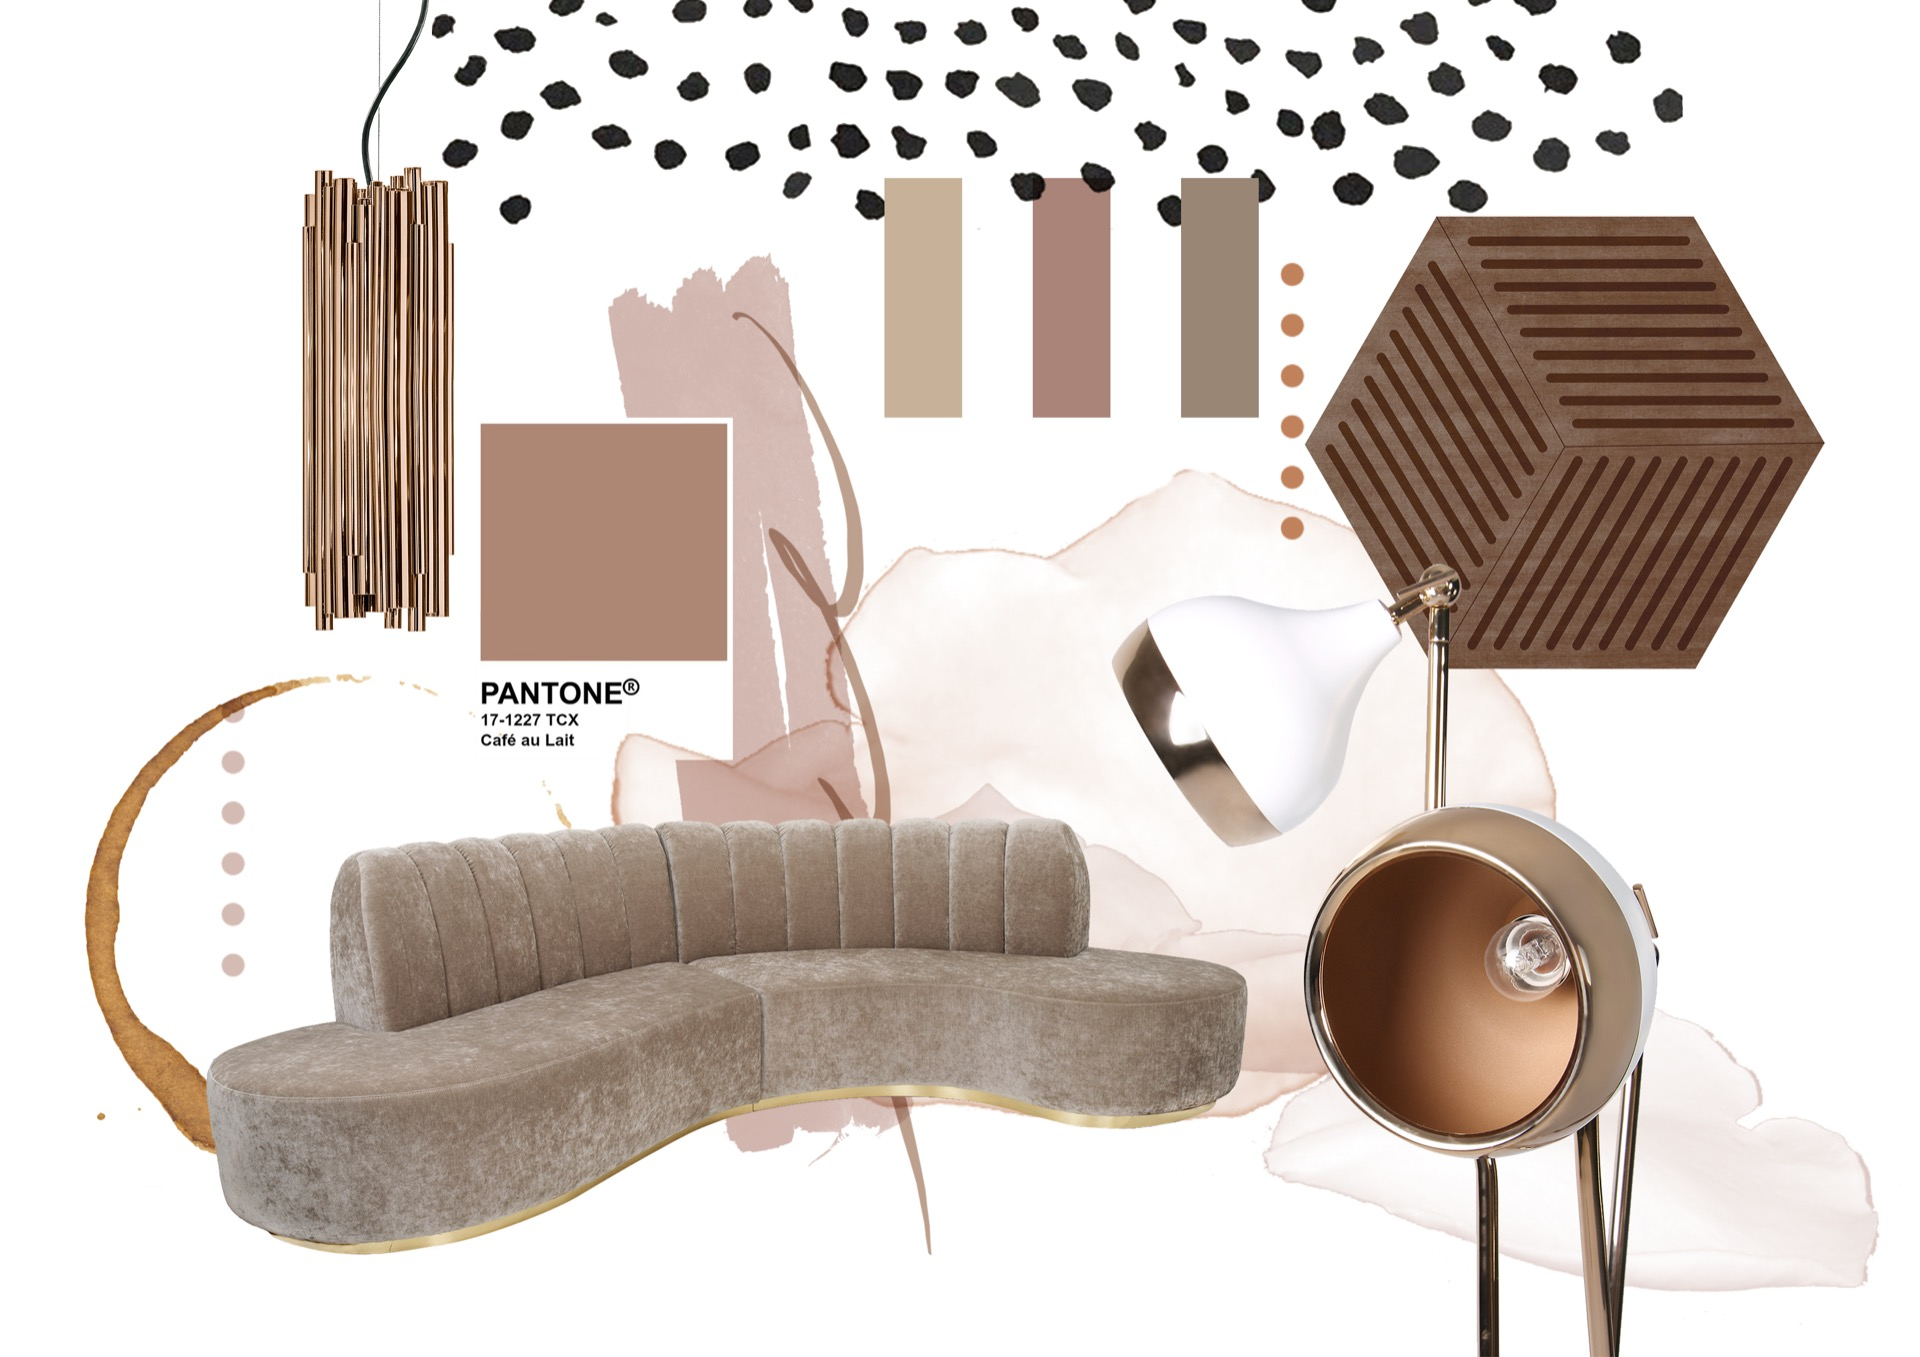 6 SUMMER COLOUR PALETTES FOR A RADIANTLY UPBEAT INTERIOR DESIGN